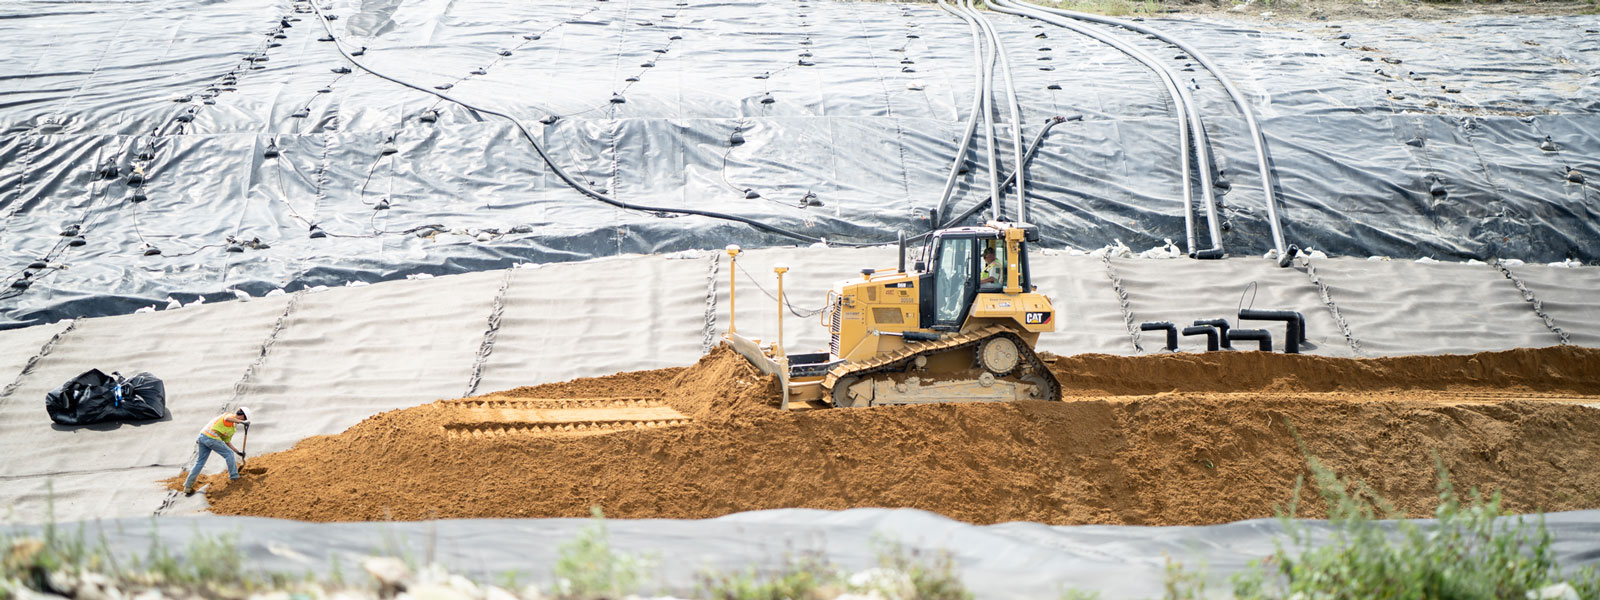 Cat® Bulldozer & Bulk Employee Moving Dirt To Cover Solid Waste At A Landfill Site